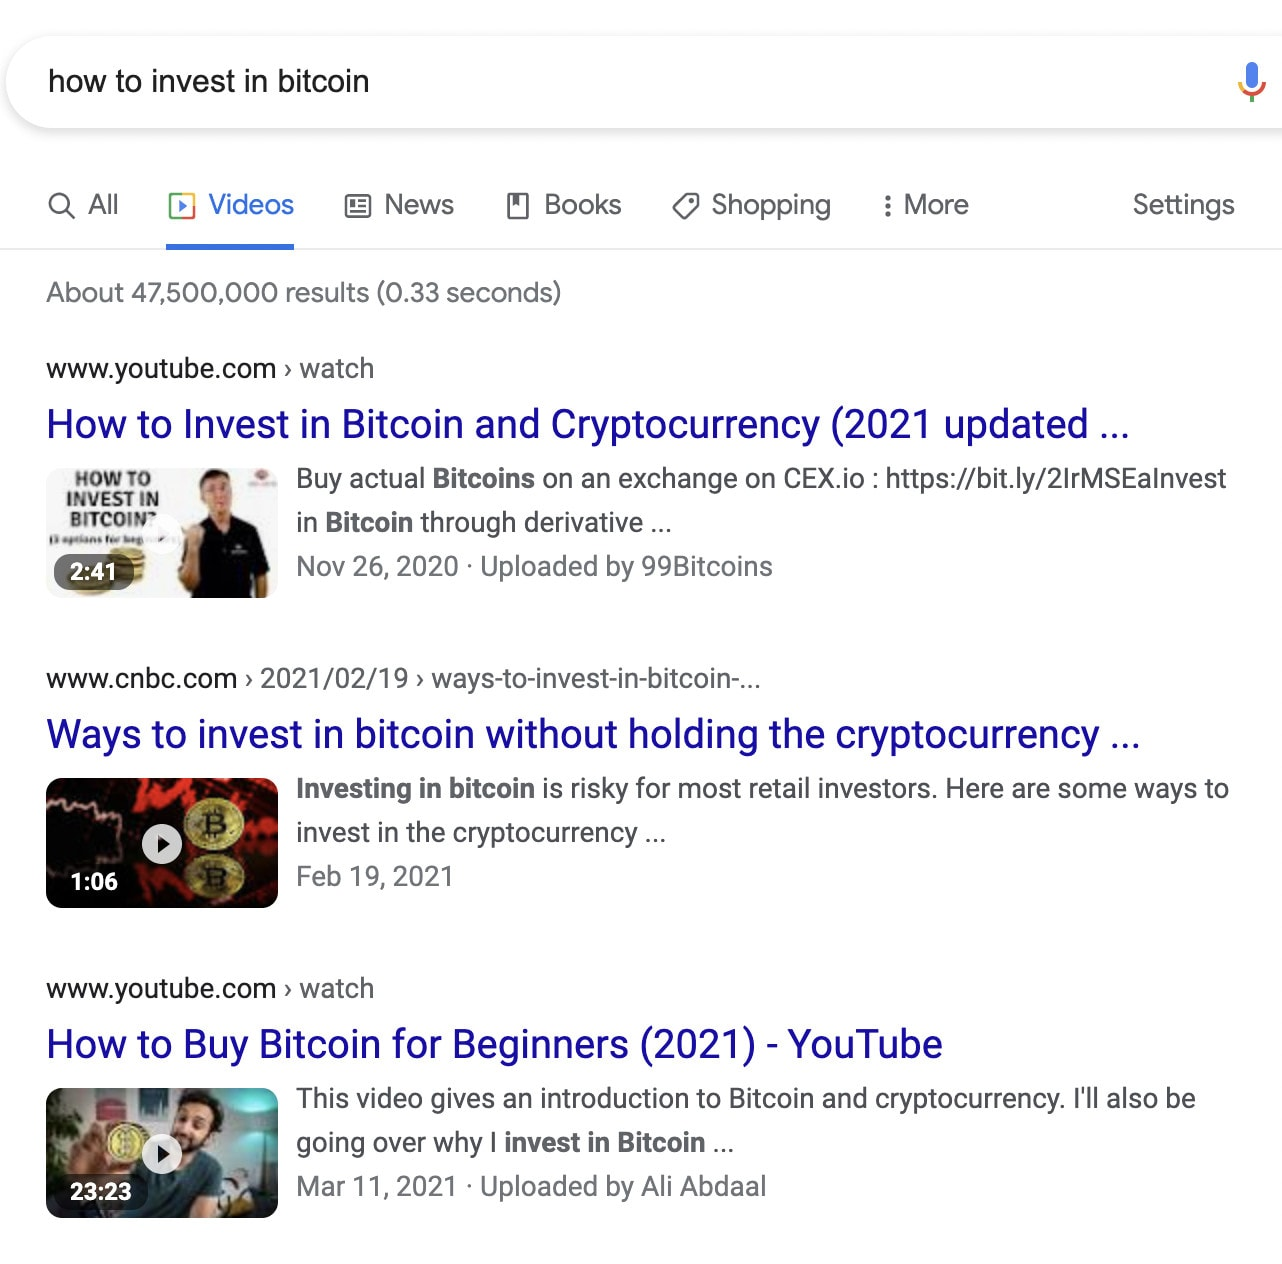 """Video results on a SERP for """"how to invest in bitcoin."""""""